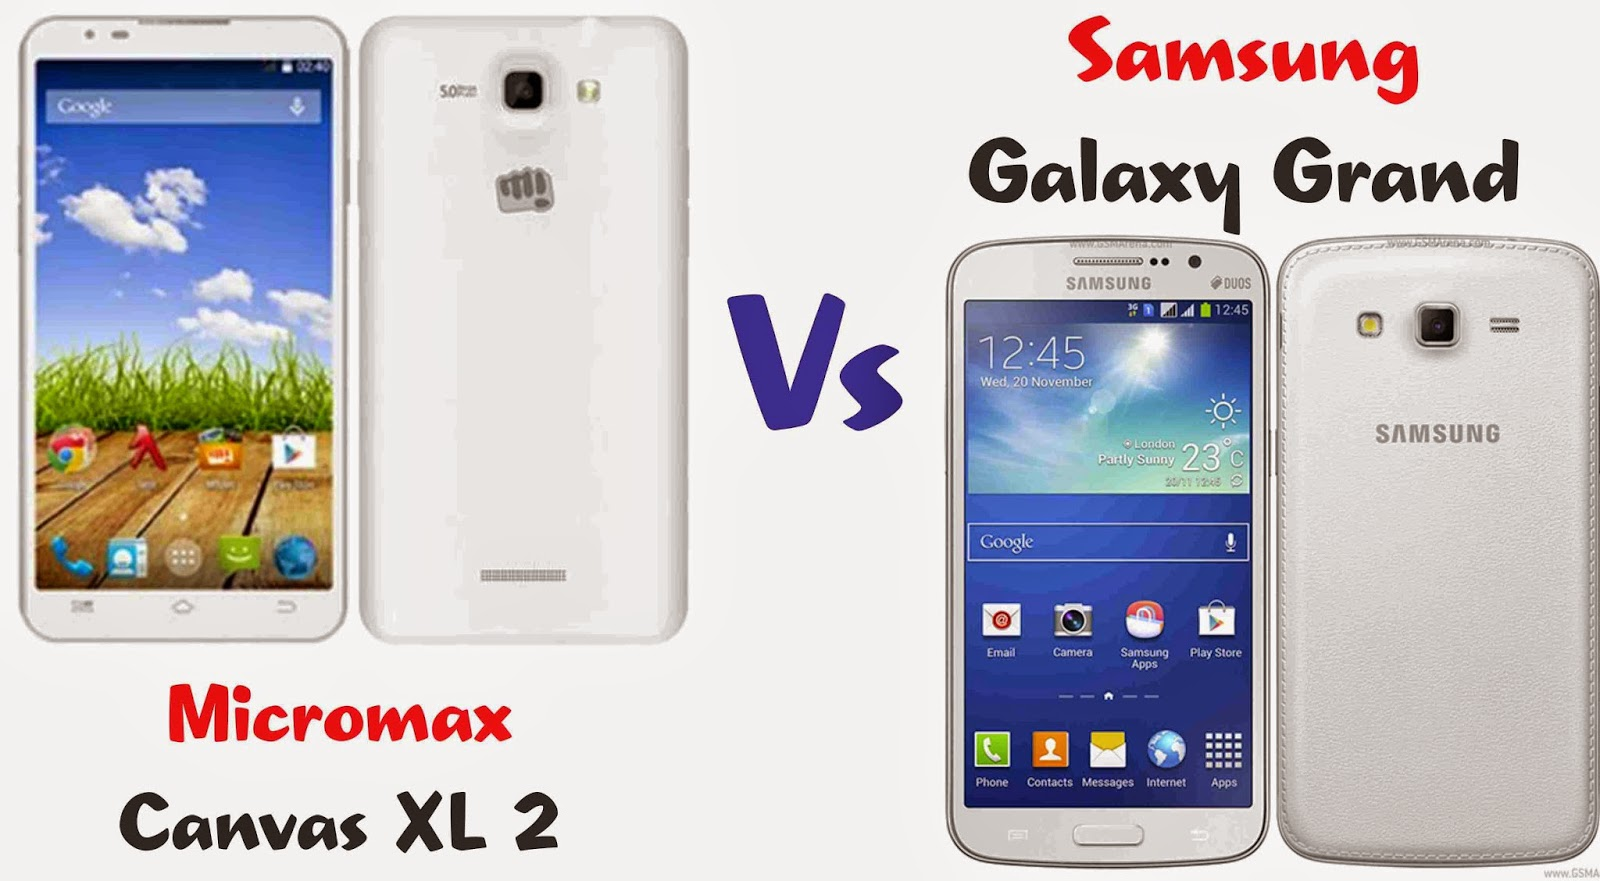 Micromax Canvas XL 2 vs Samsung Galaxy Grand